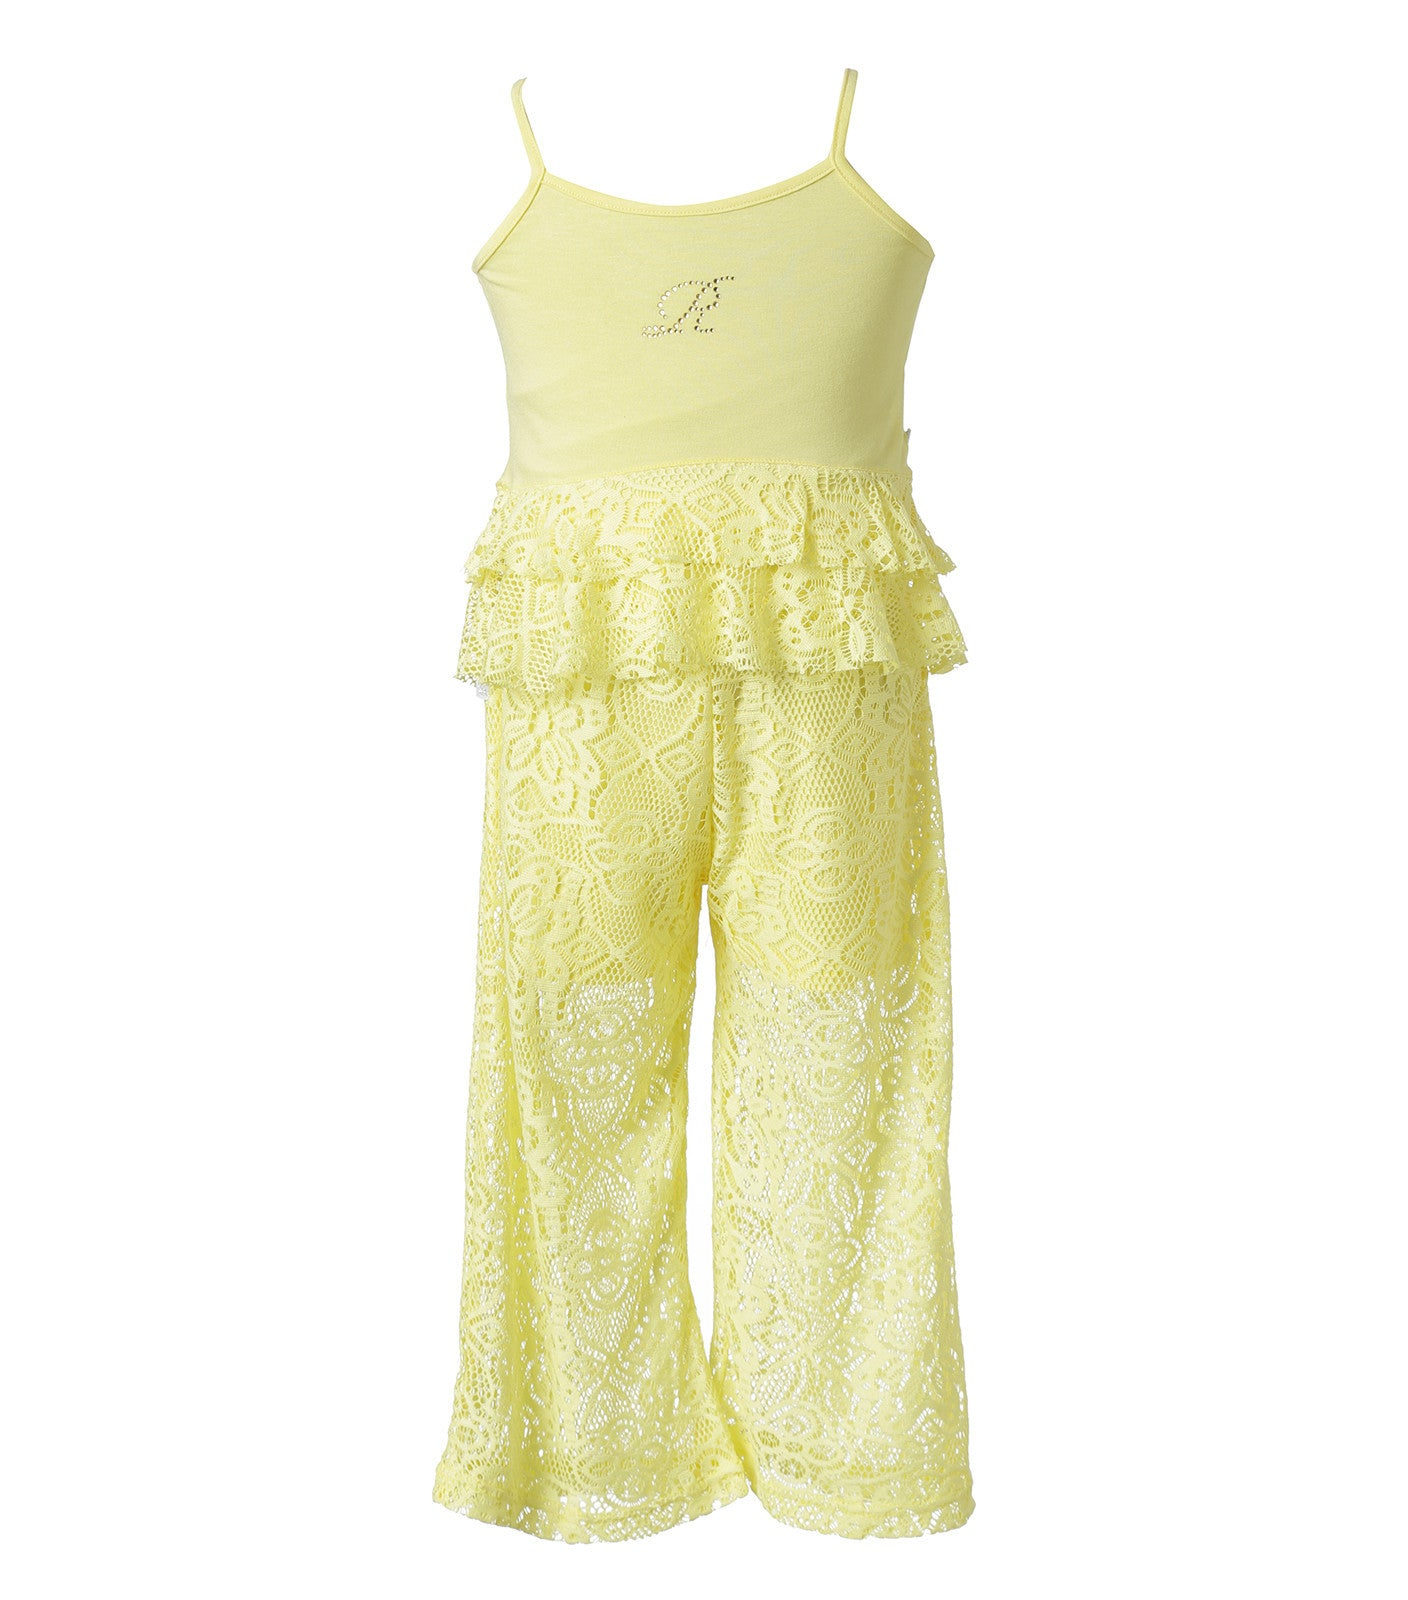 Girls Set Yellow Top & Lace Pants